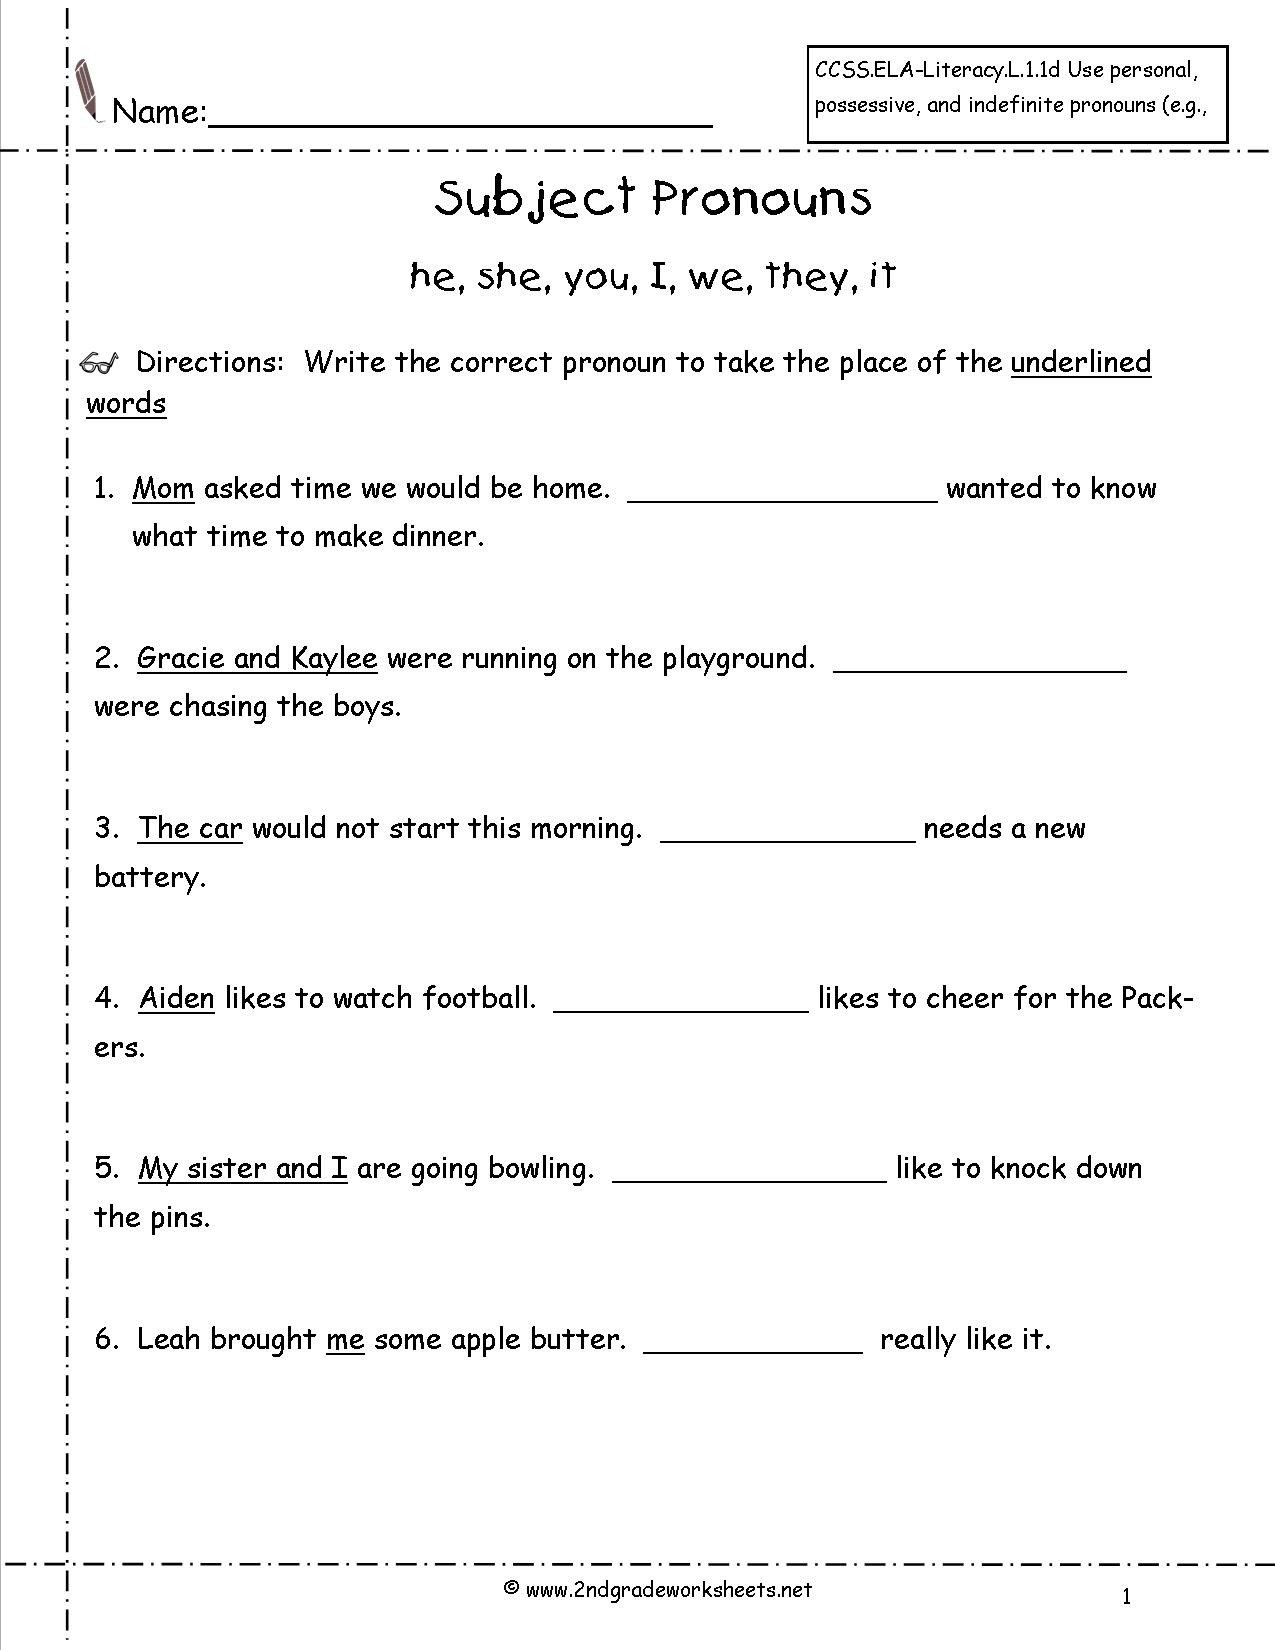 Pronoun Worksheets 2nd Grade Wonders Second Grade Unit Five Week E Printouts